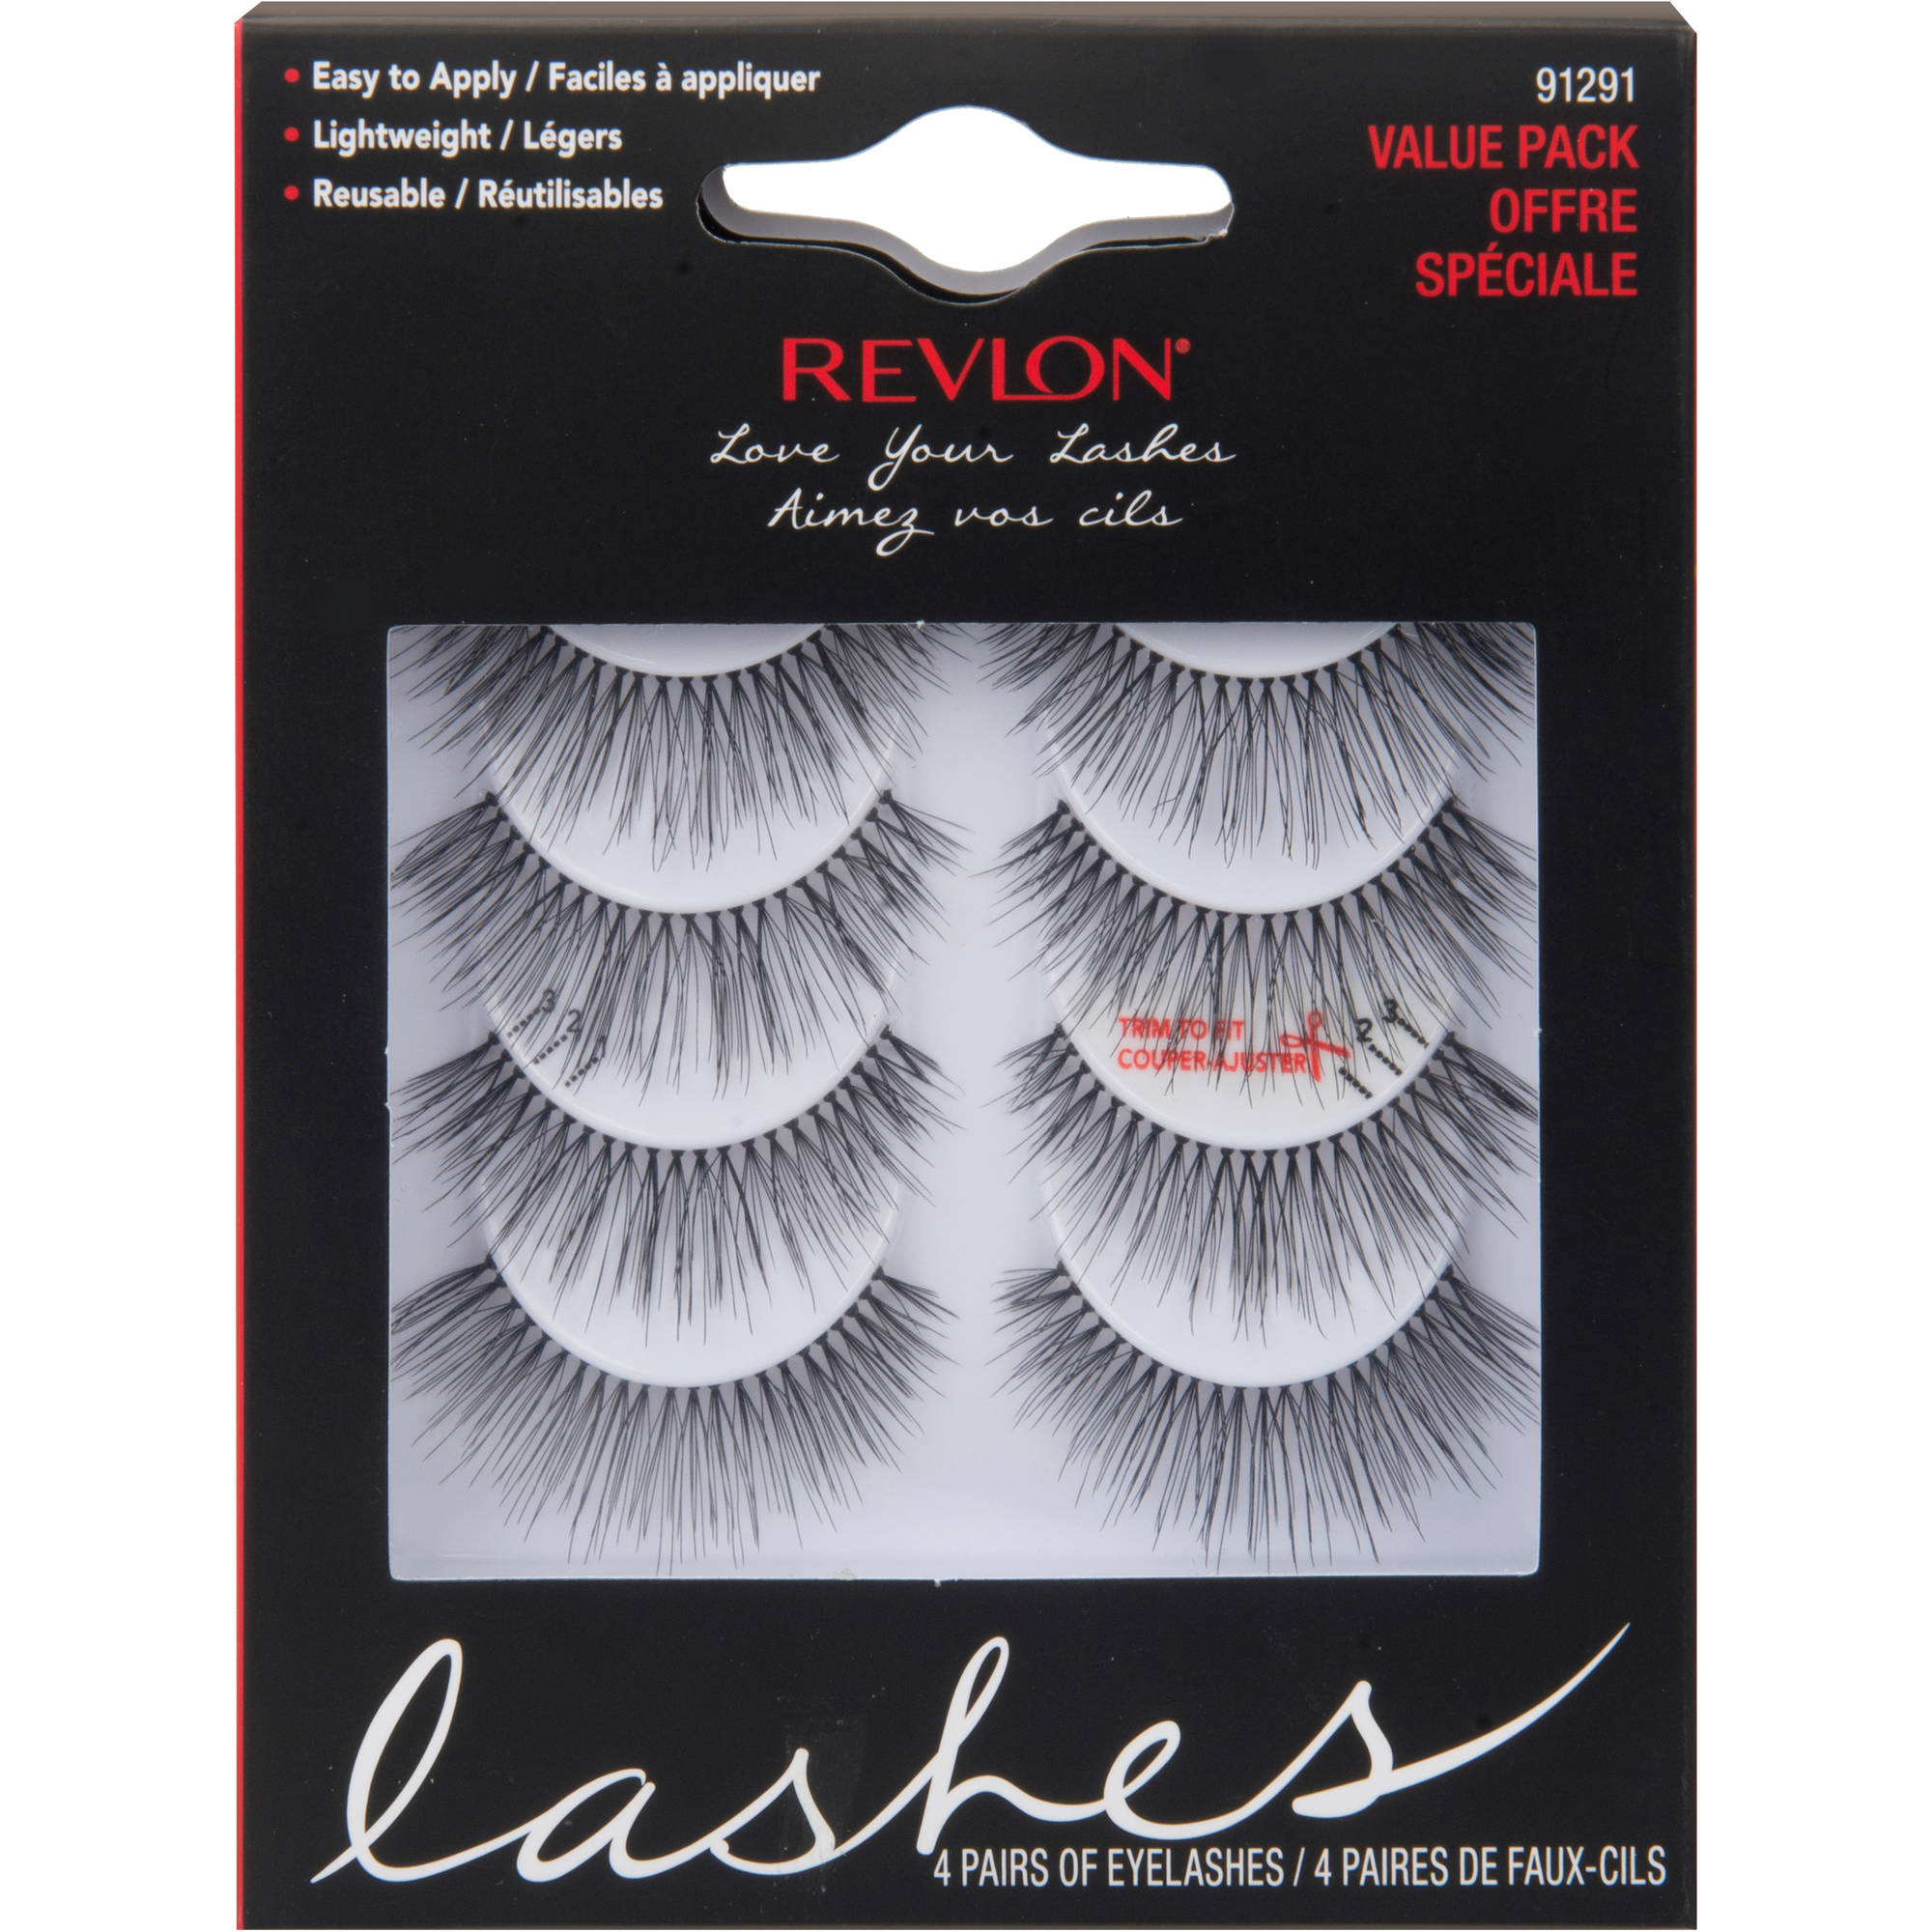 Revlon Love Your Lashes Eyelashes, Black, 4 pairs